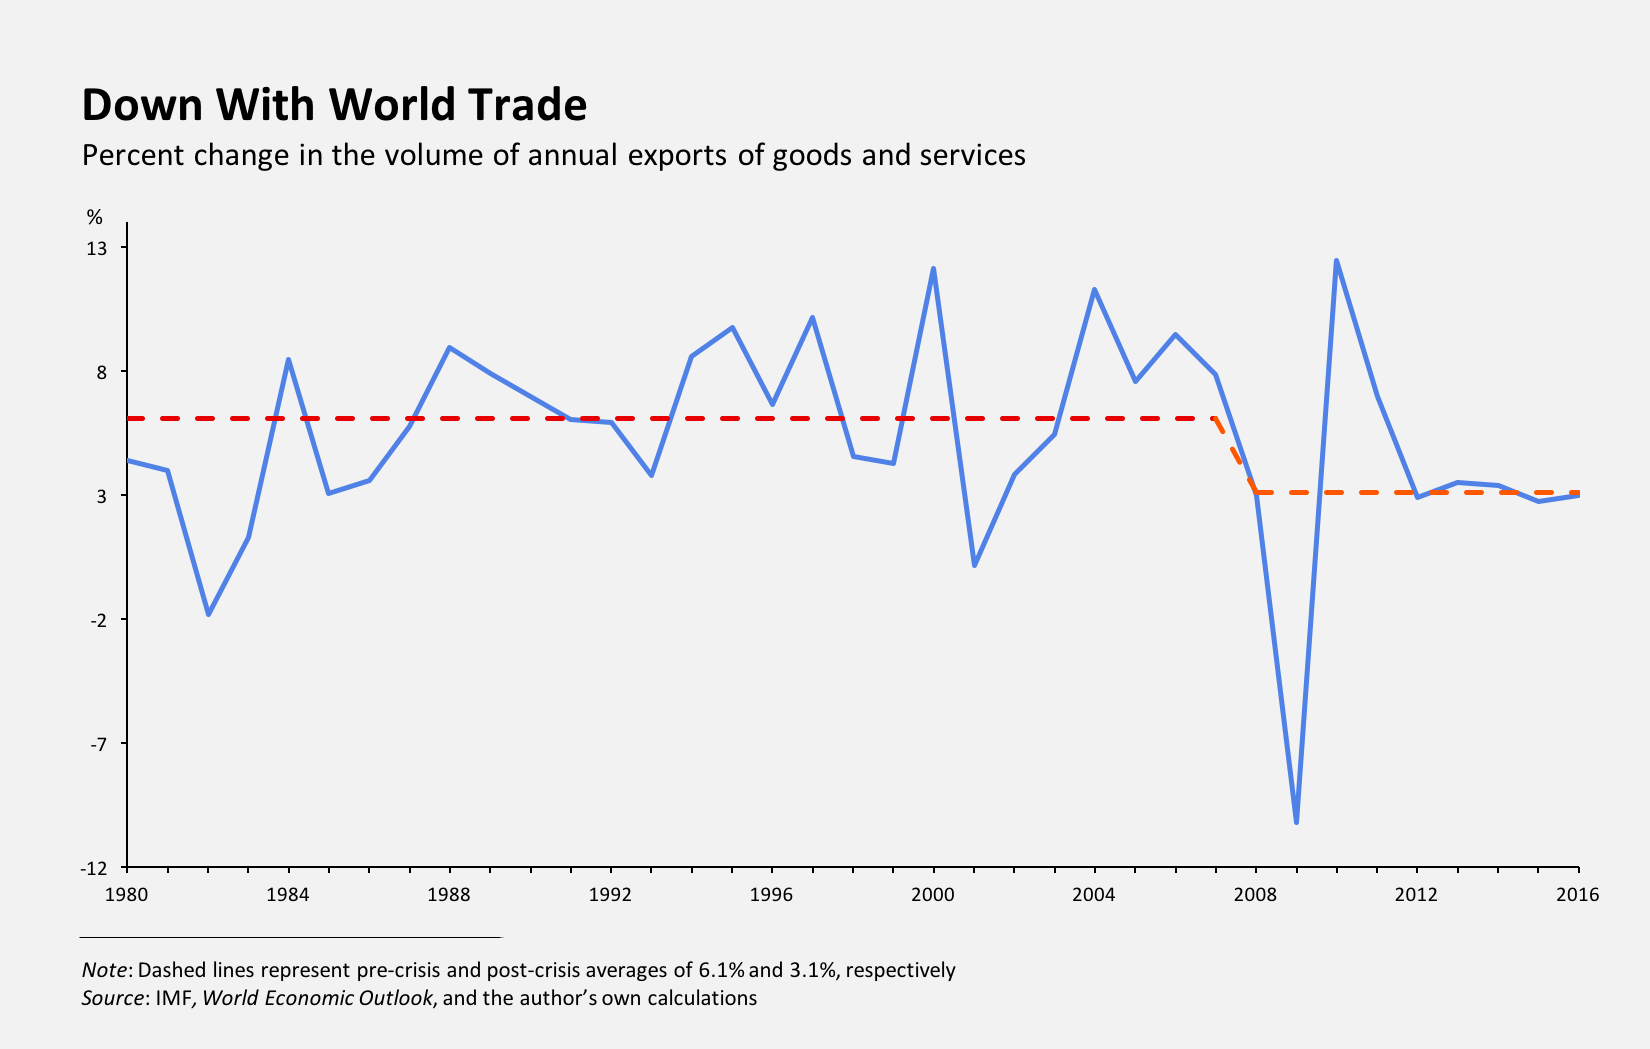 Down with world trade